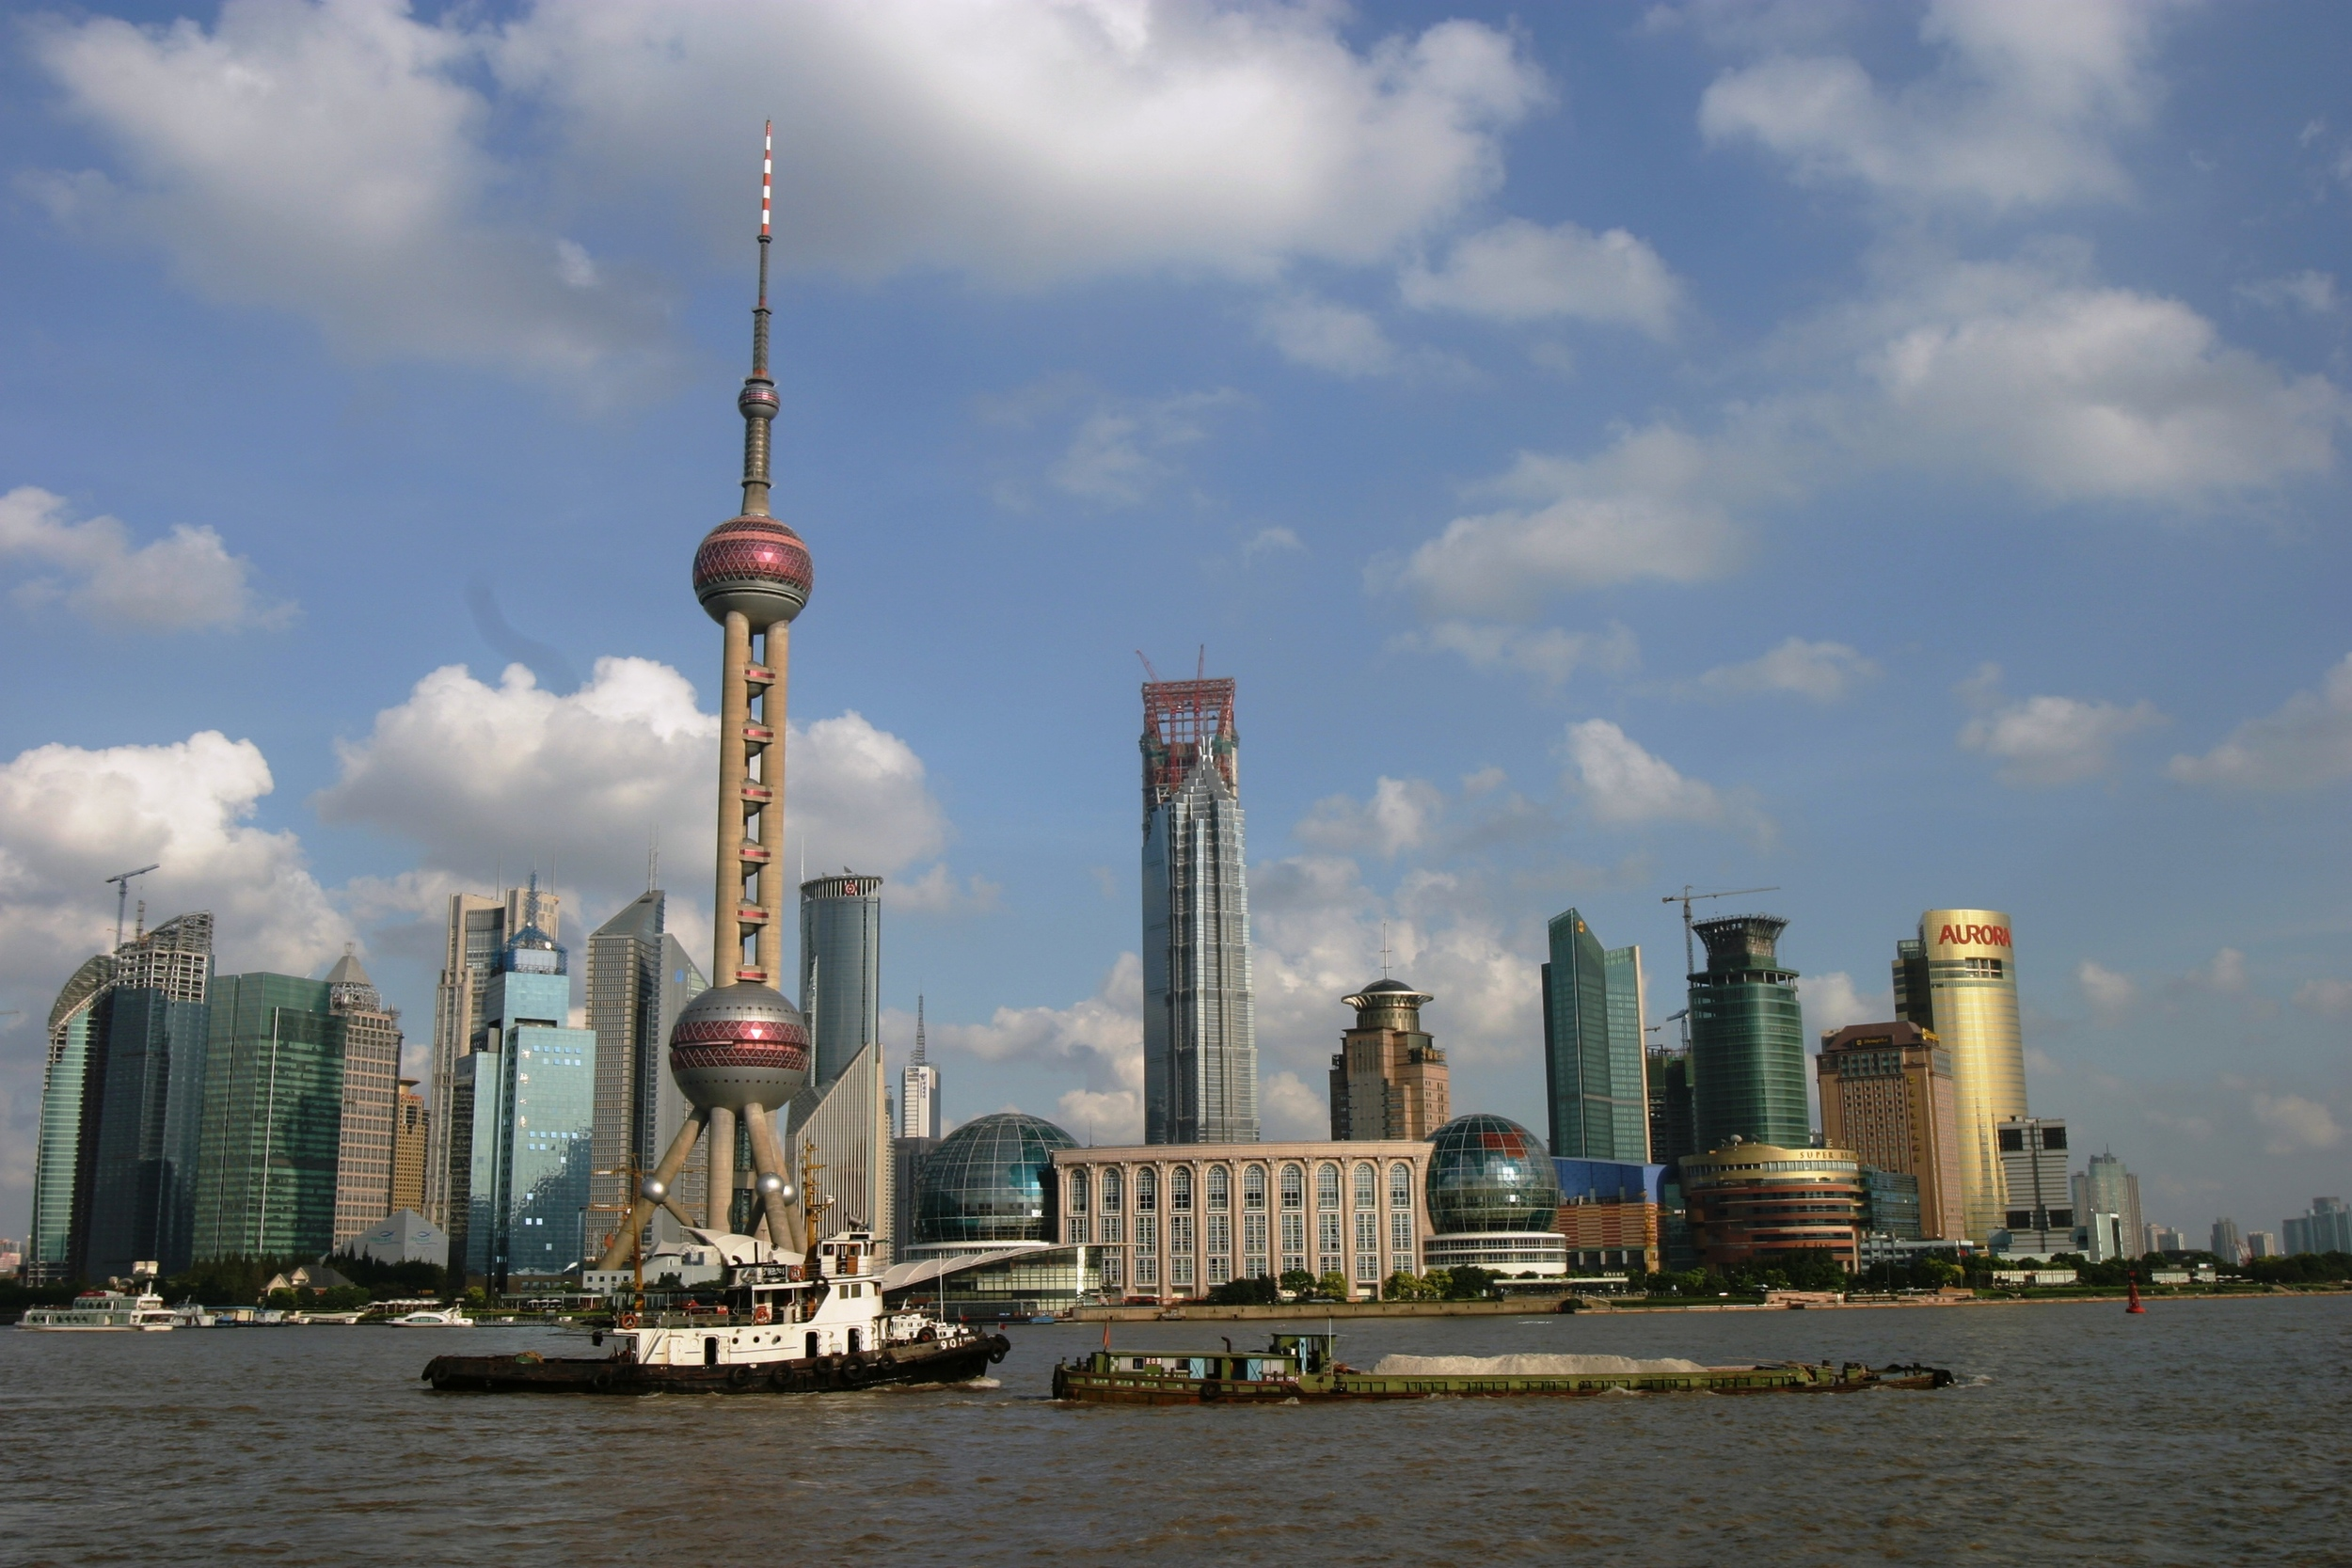 Boats float down the Huangpu River in downtown Shanghai, China overlooking the city's Pudong district. The Oriental Pearl TV Tower rises above the rest of Shanghai's skyline.